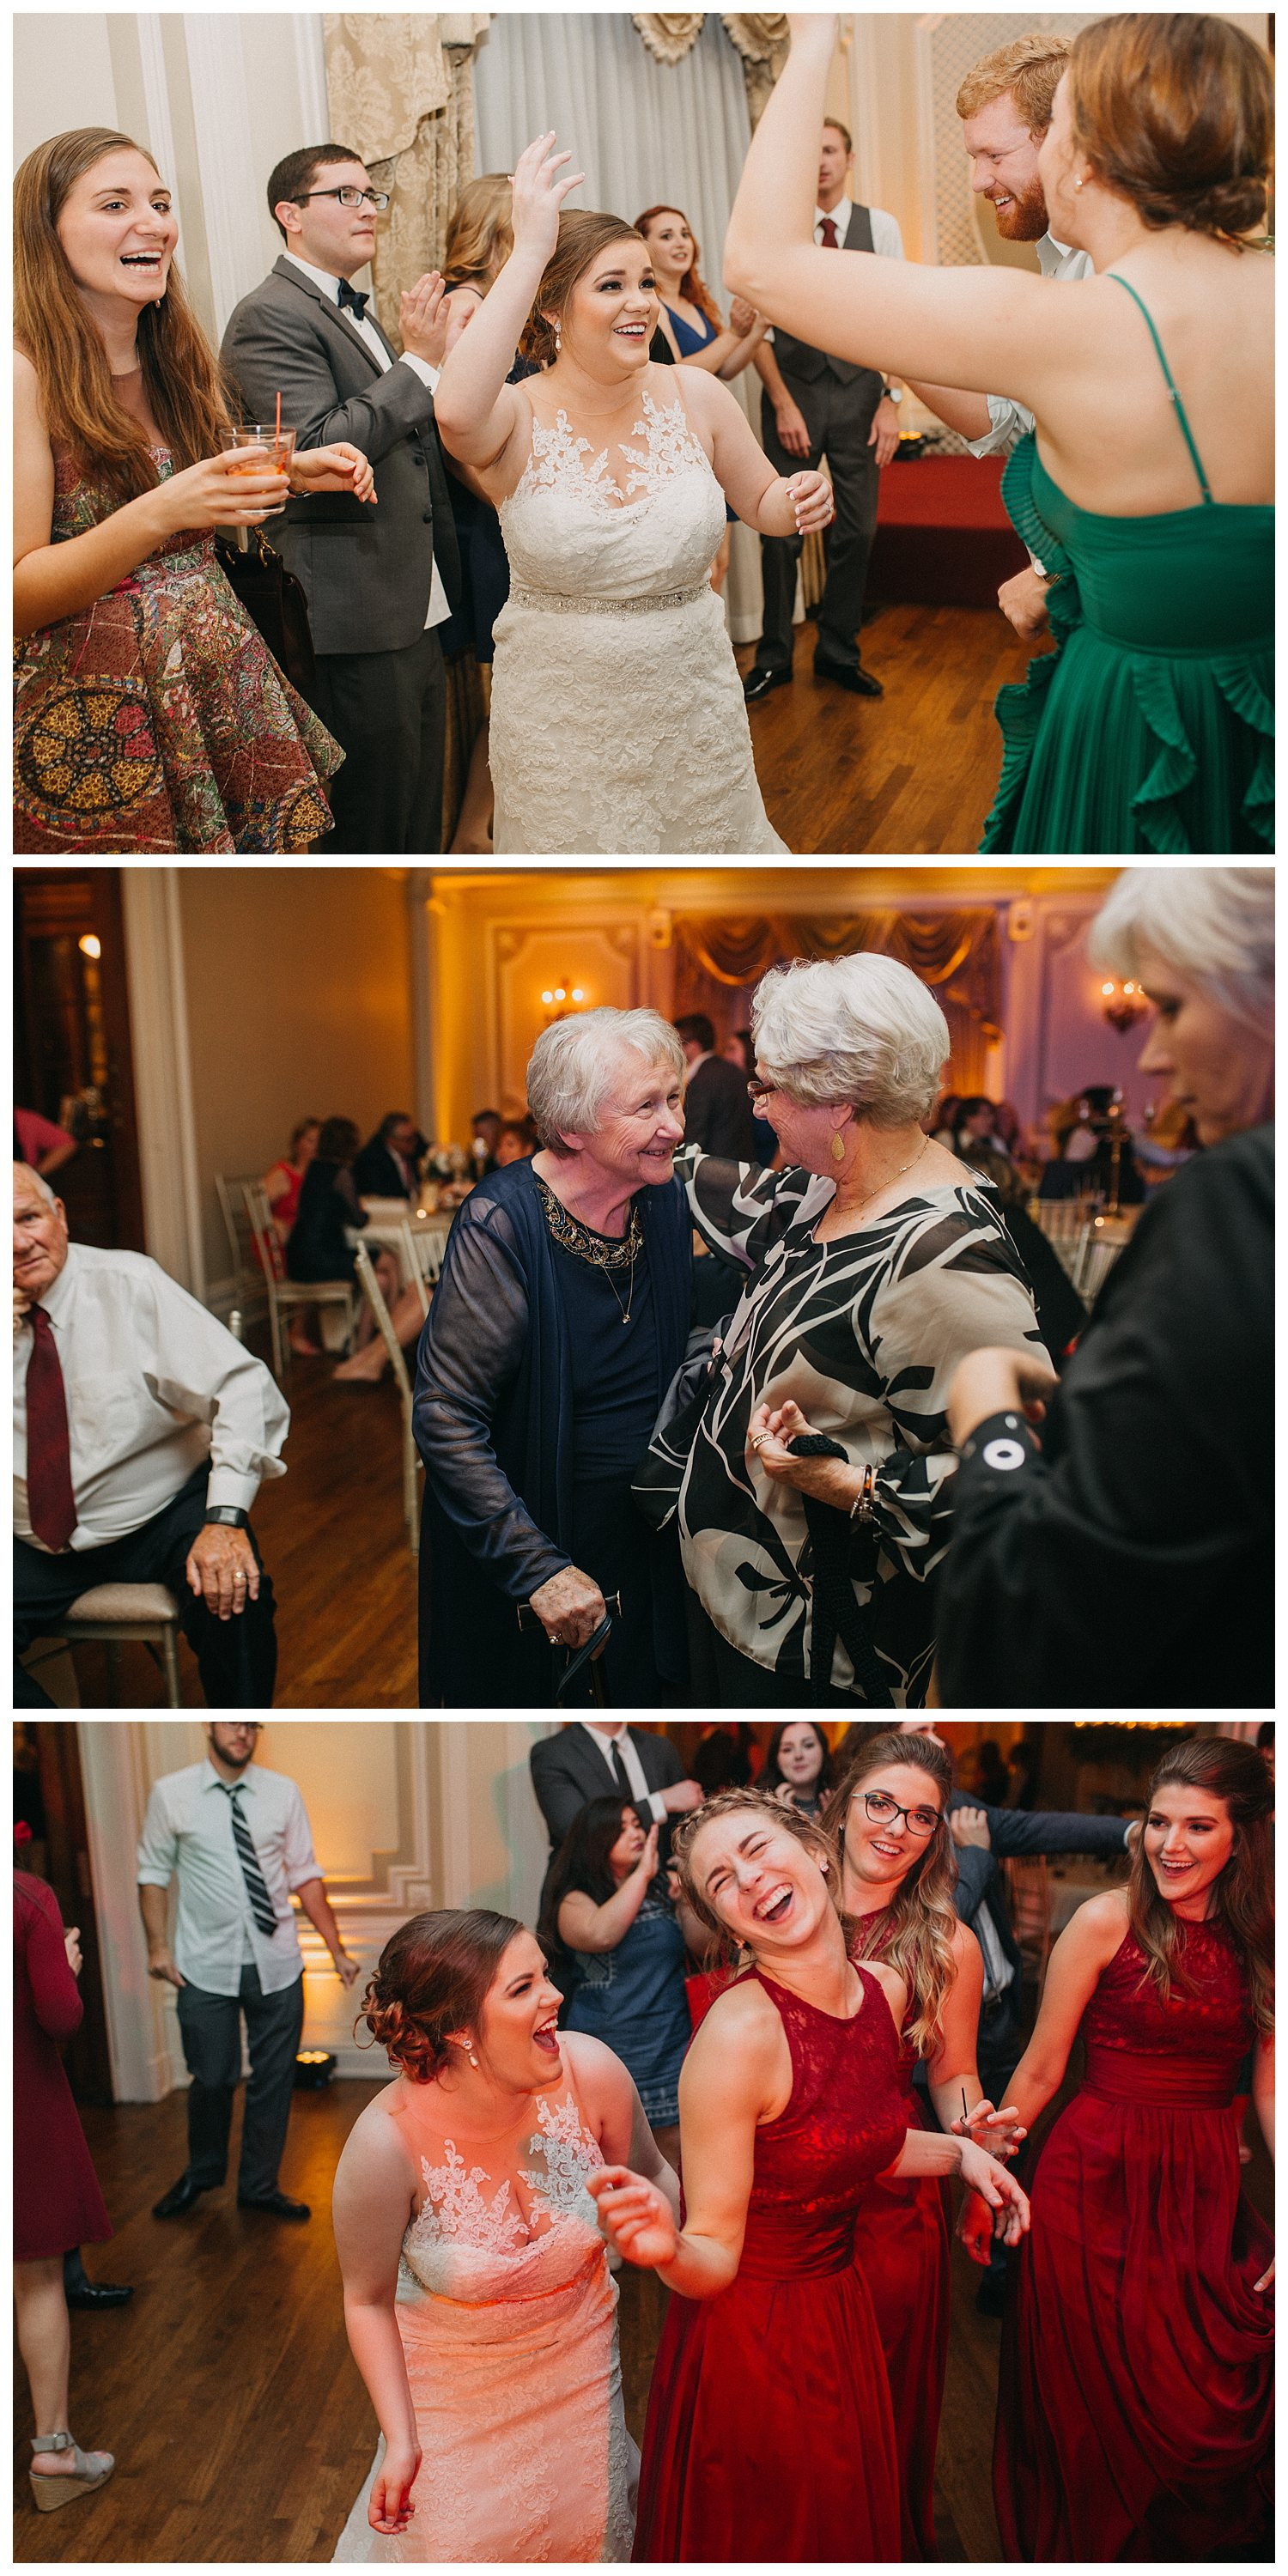 Kelsey_Diane_Photography_Loose_Mansion_Wedding_Photography_Kansas_City_Victor_Lyndsay_0175.jpg